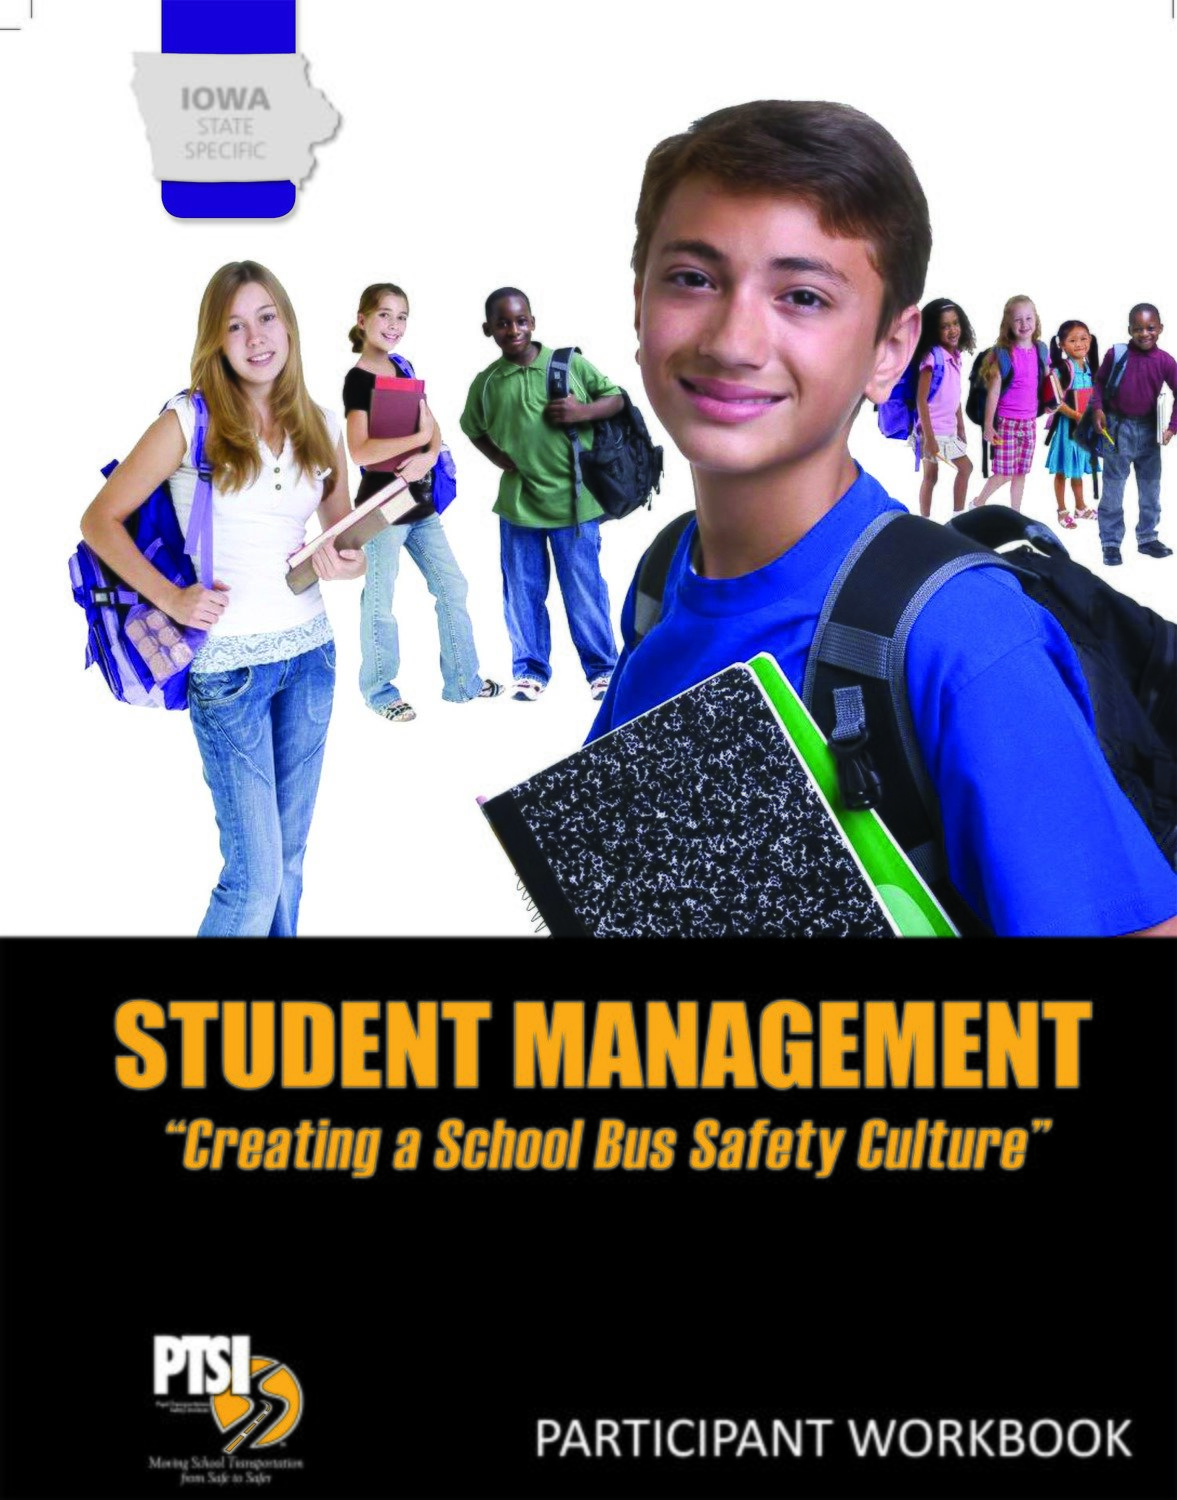 """Iowa State Specific — Student Management """"Creating a Bus Safety Culture"""" WORKBOOK"""